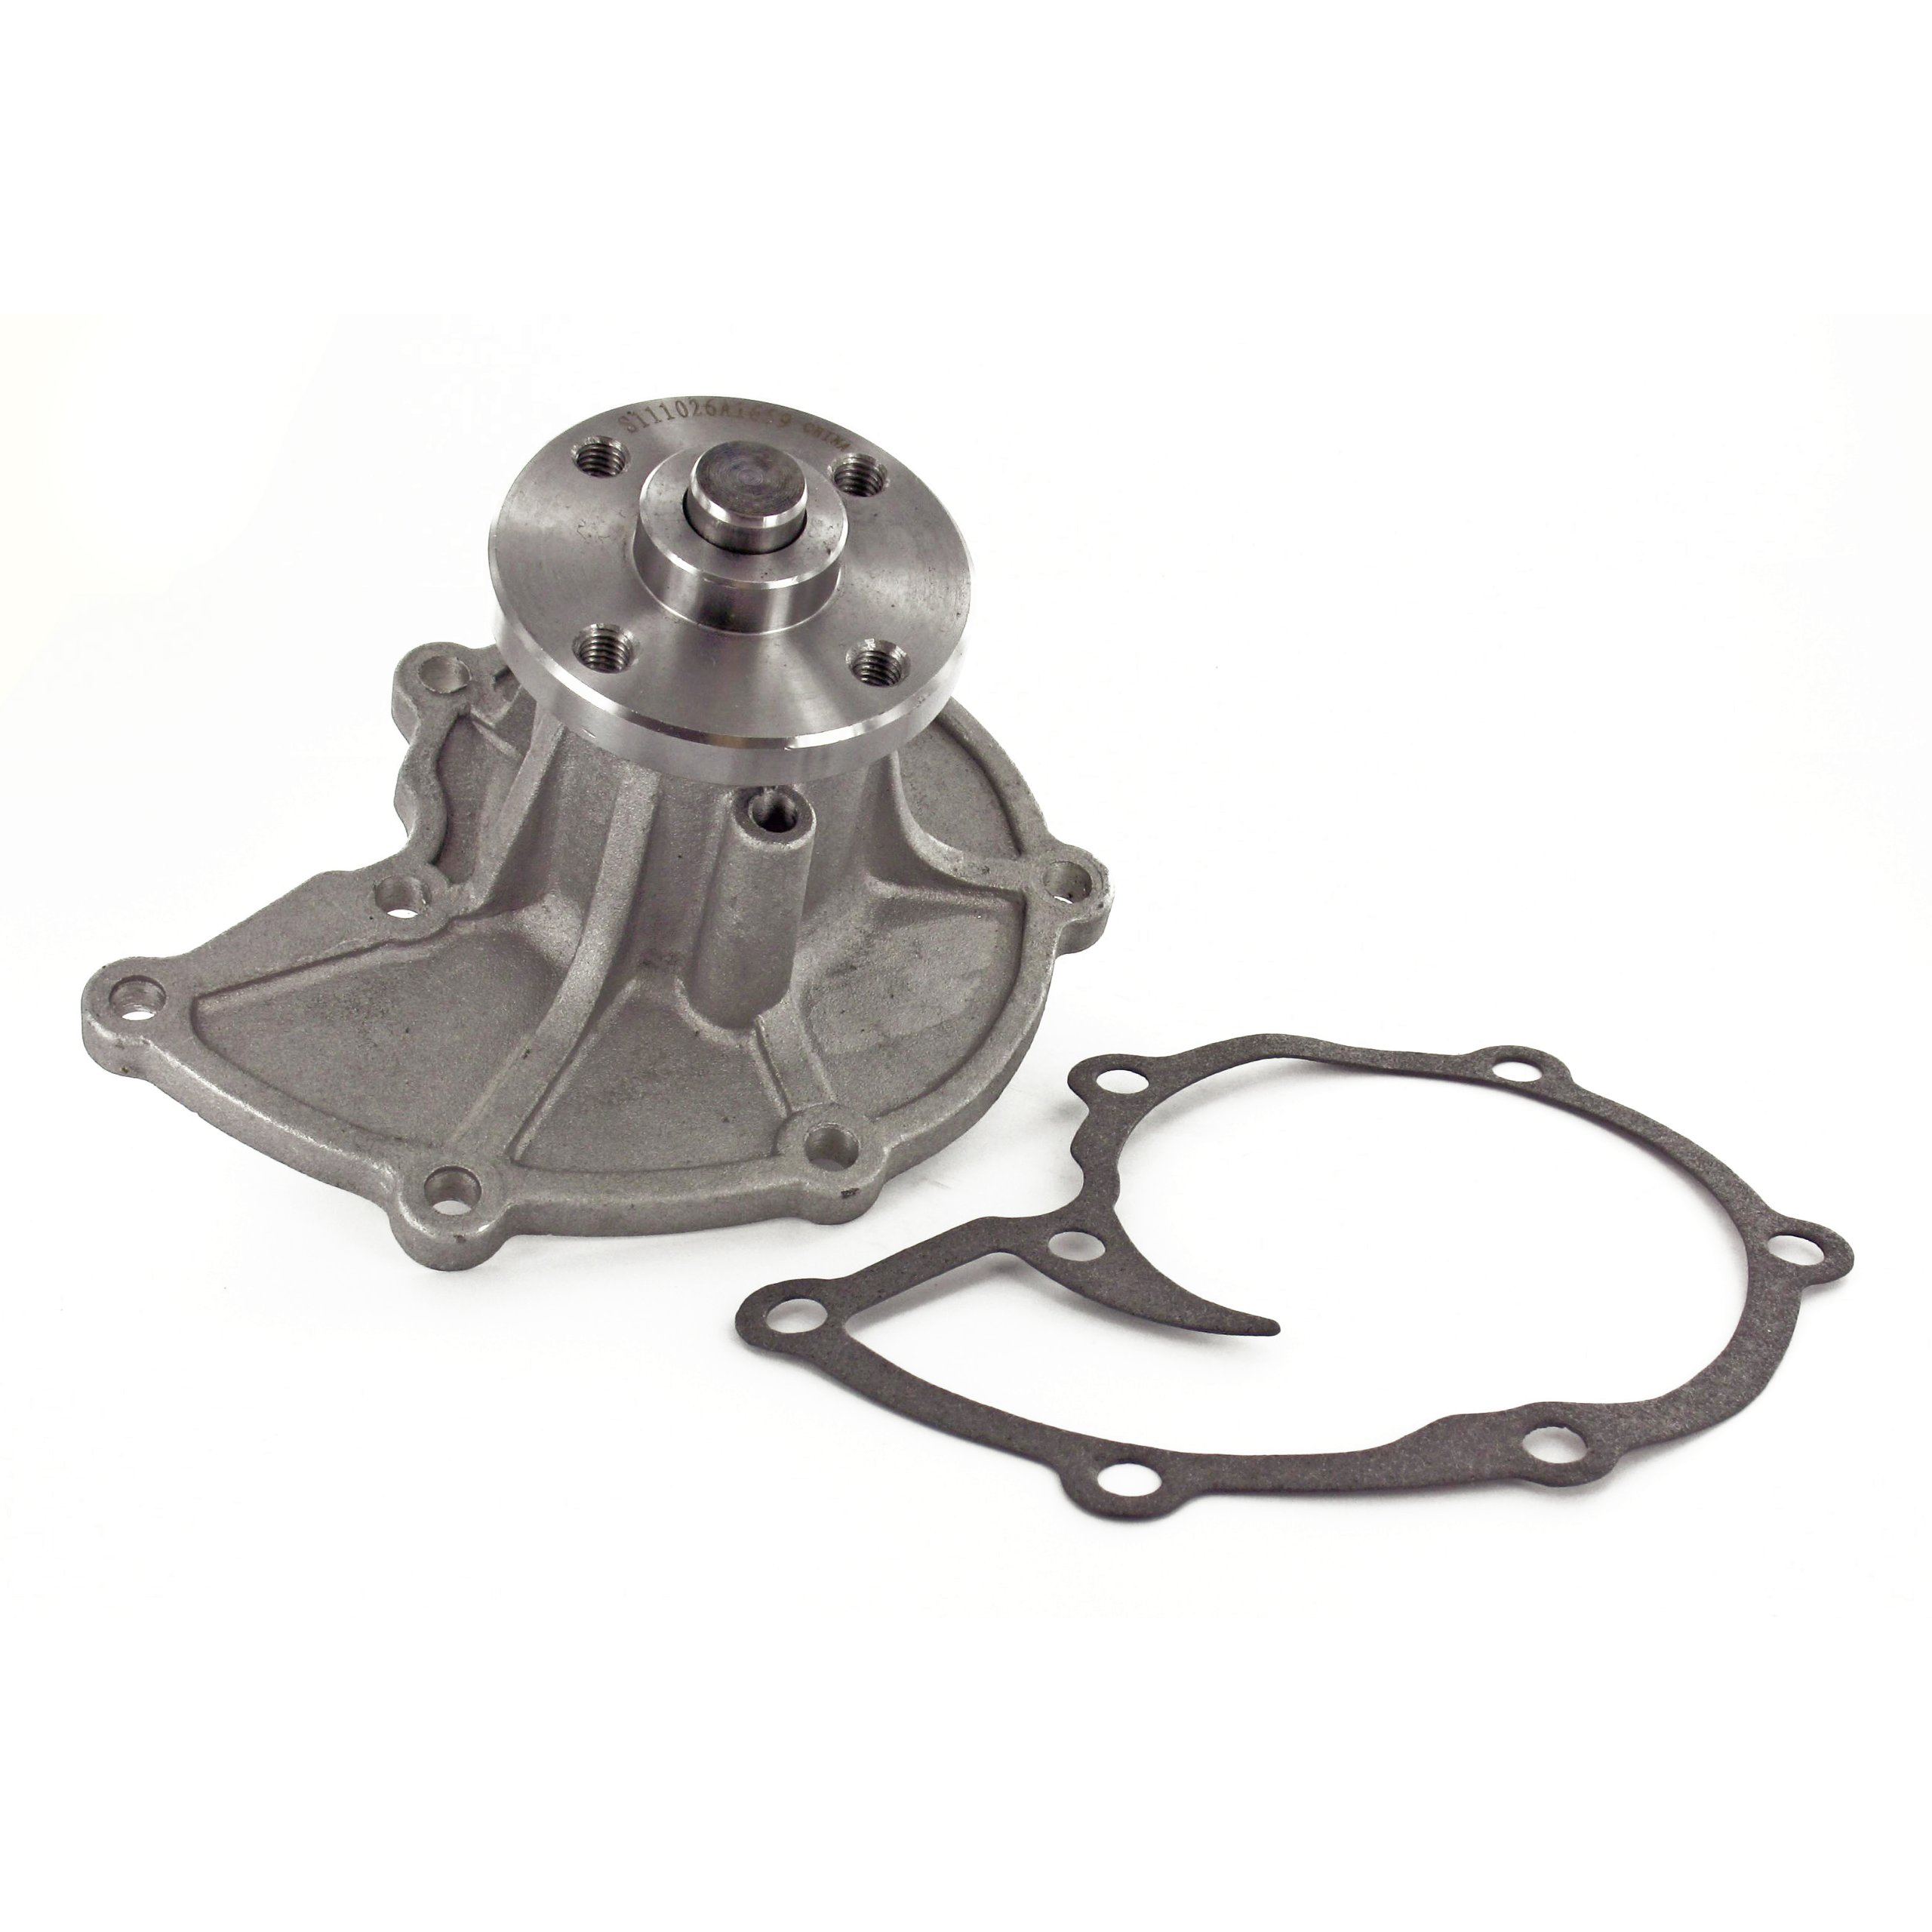 Toyota 16110-78156-71 Forklift Water Pump Insert Only, For 4Y 7 Series Engine